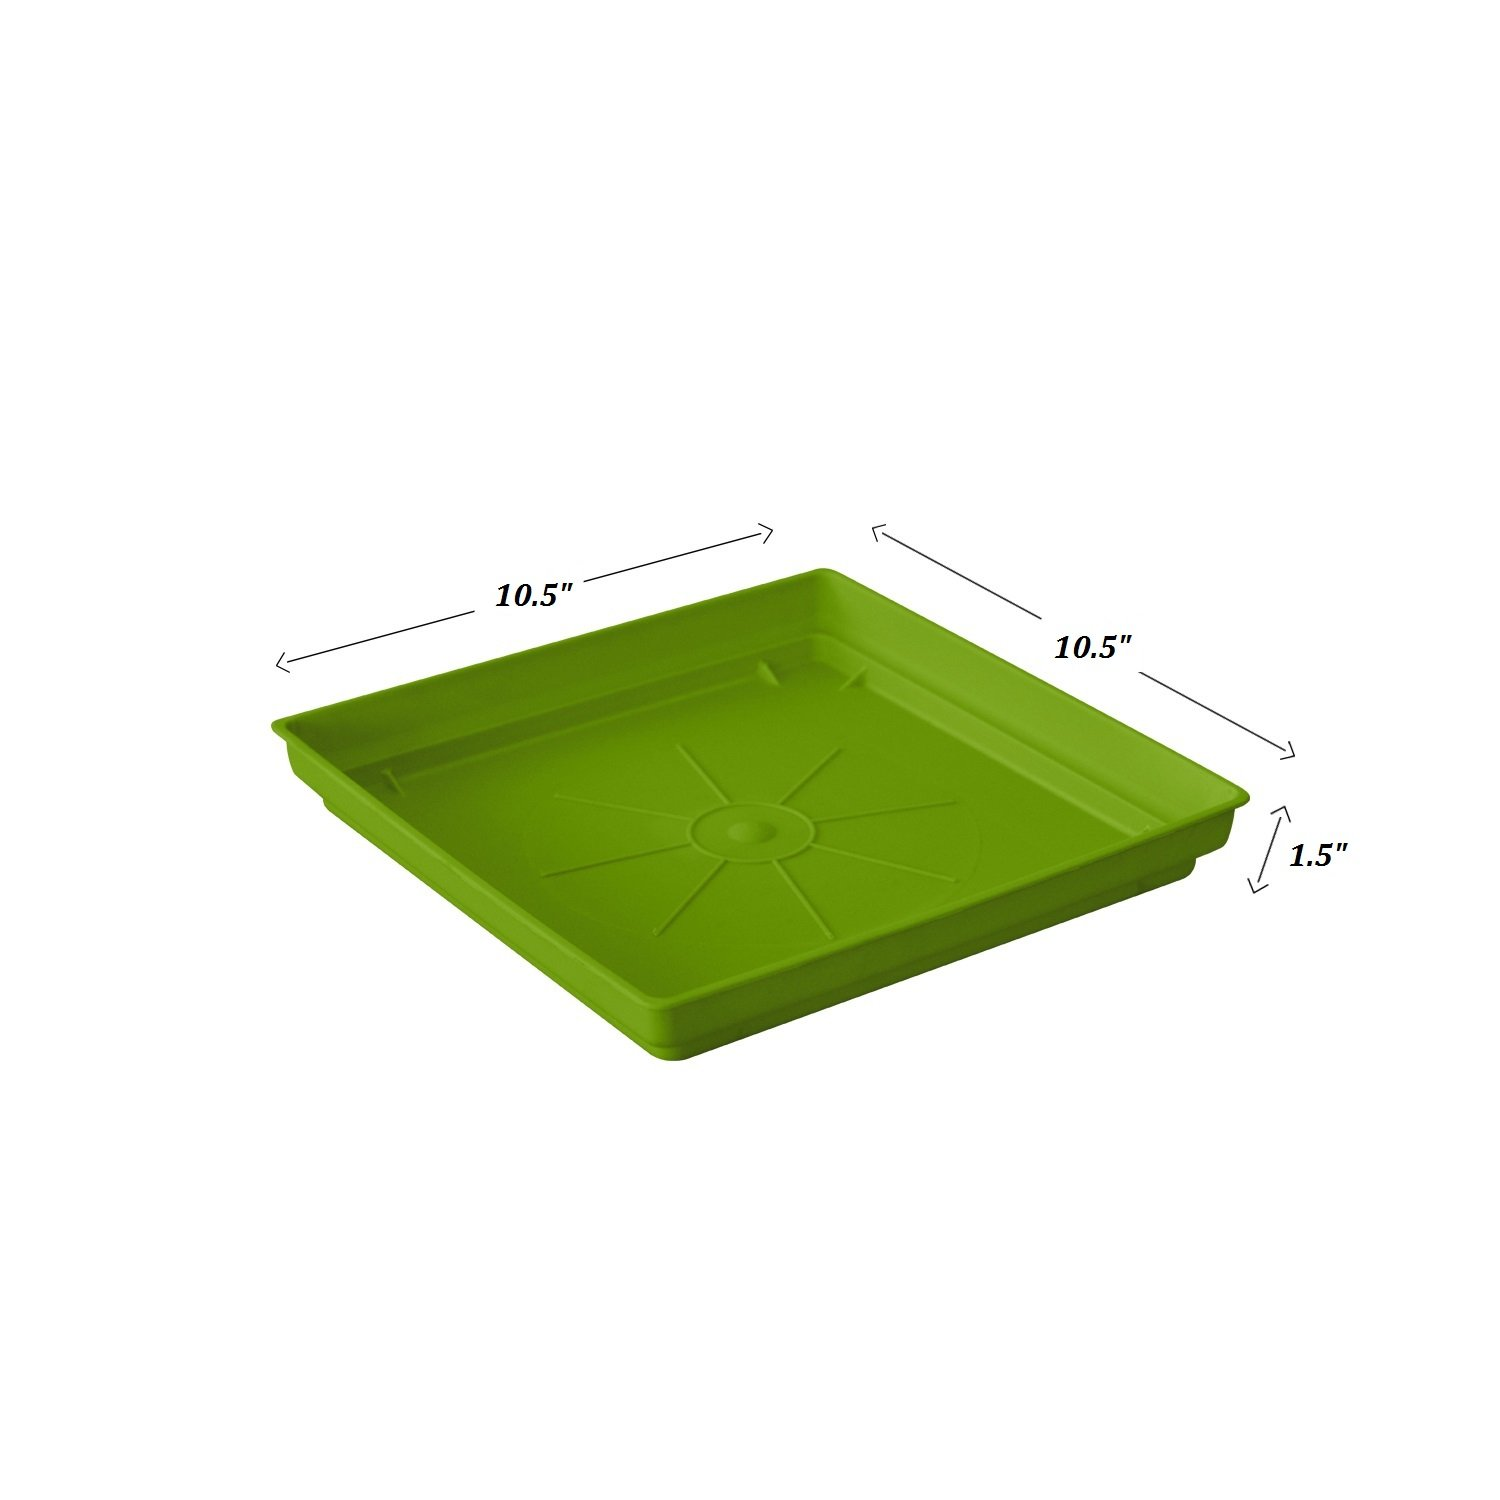 ALMI Plastic Accent Square Planter Drip Tray 10.5-Inch Ideal for 14-inch - For plants, Flowers, Pot, Indoor, Outdoor - Light Green